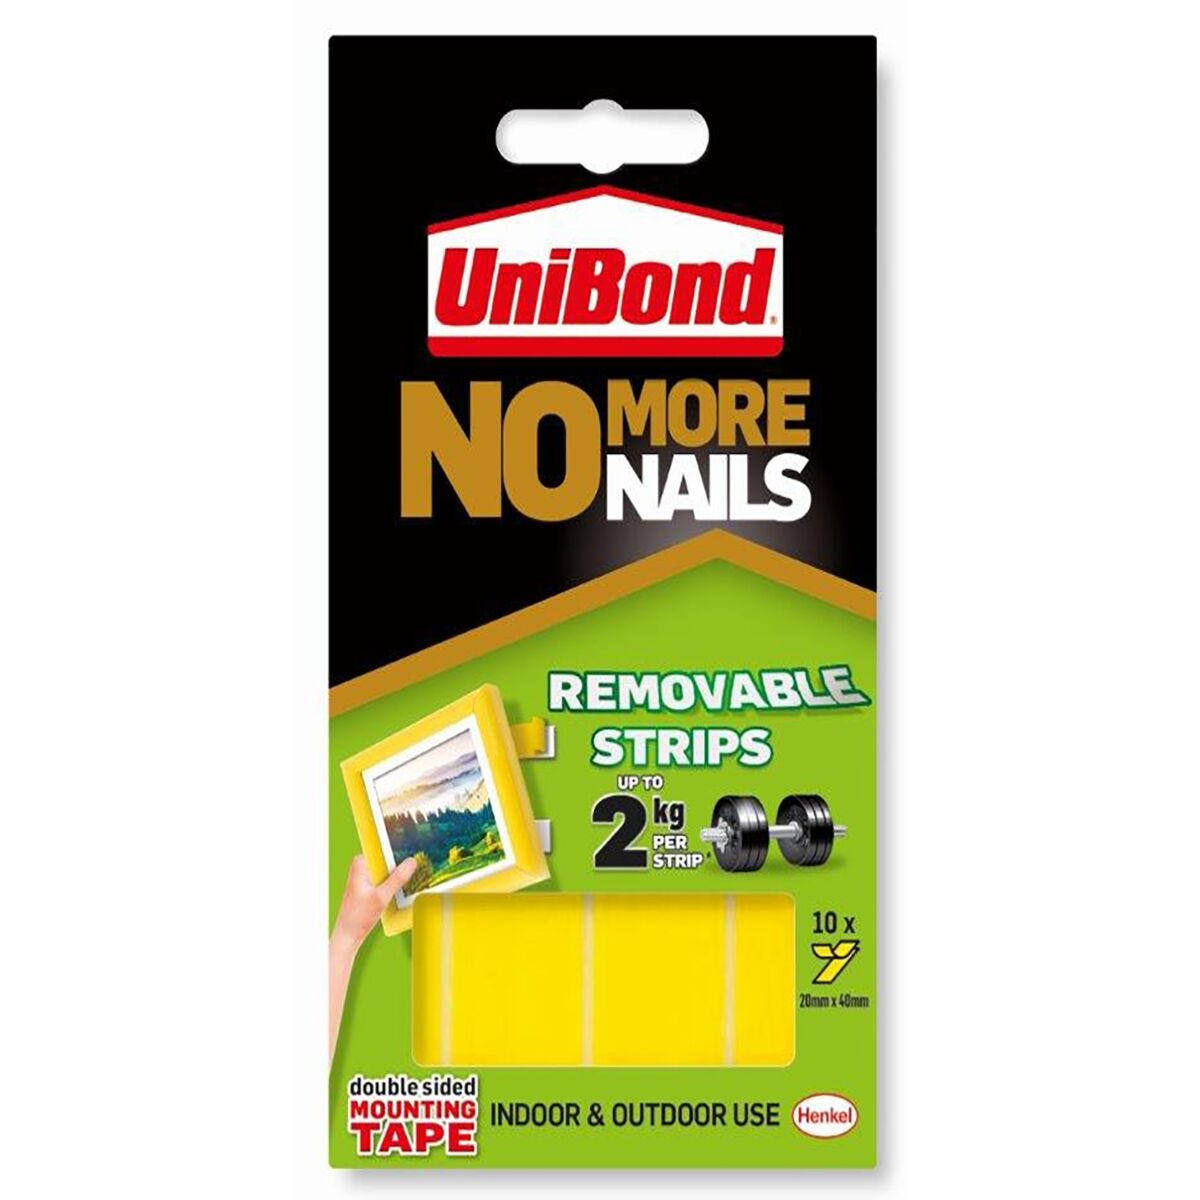 Unibond No More Nails Adhesive Removable Strips 20mm x 40mm Pack of 10